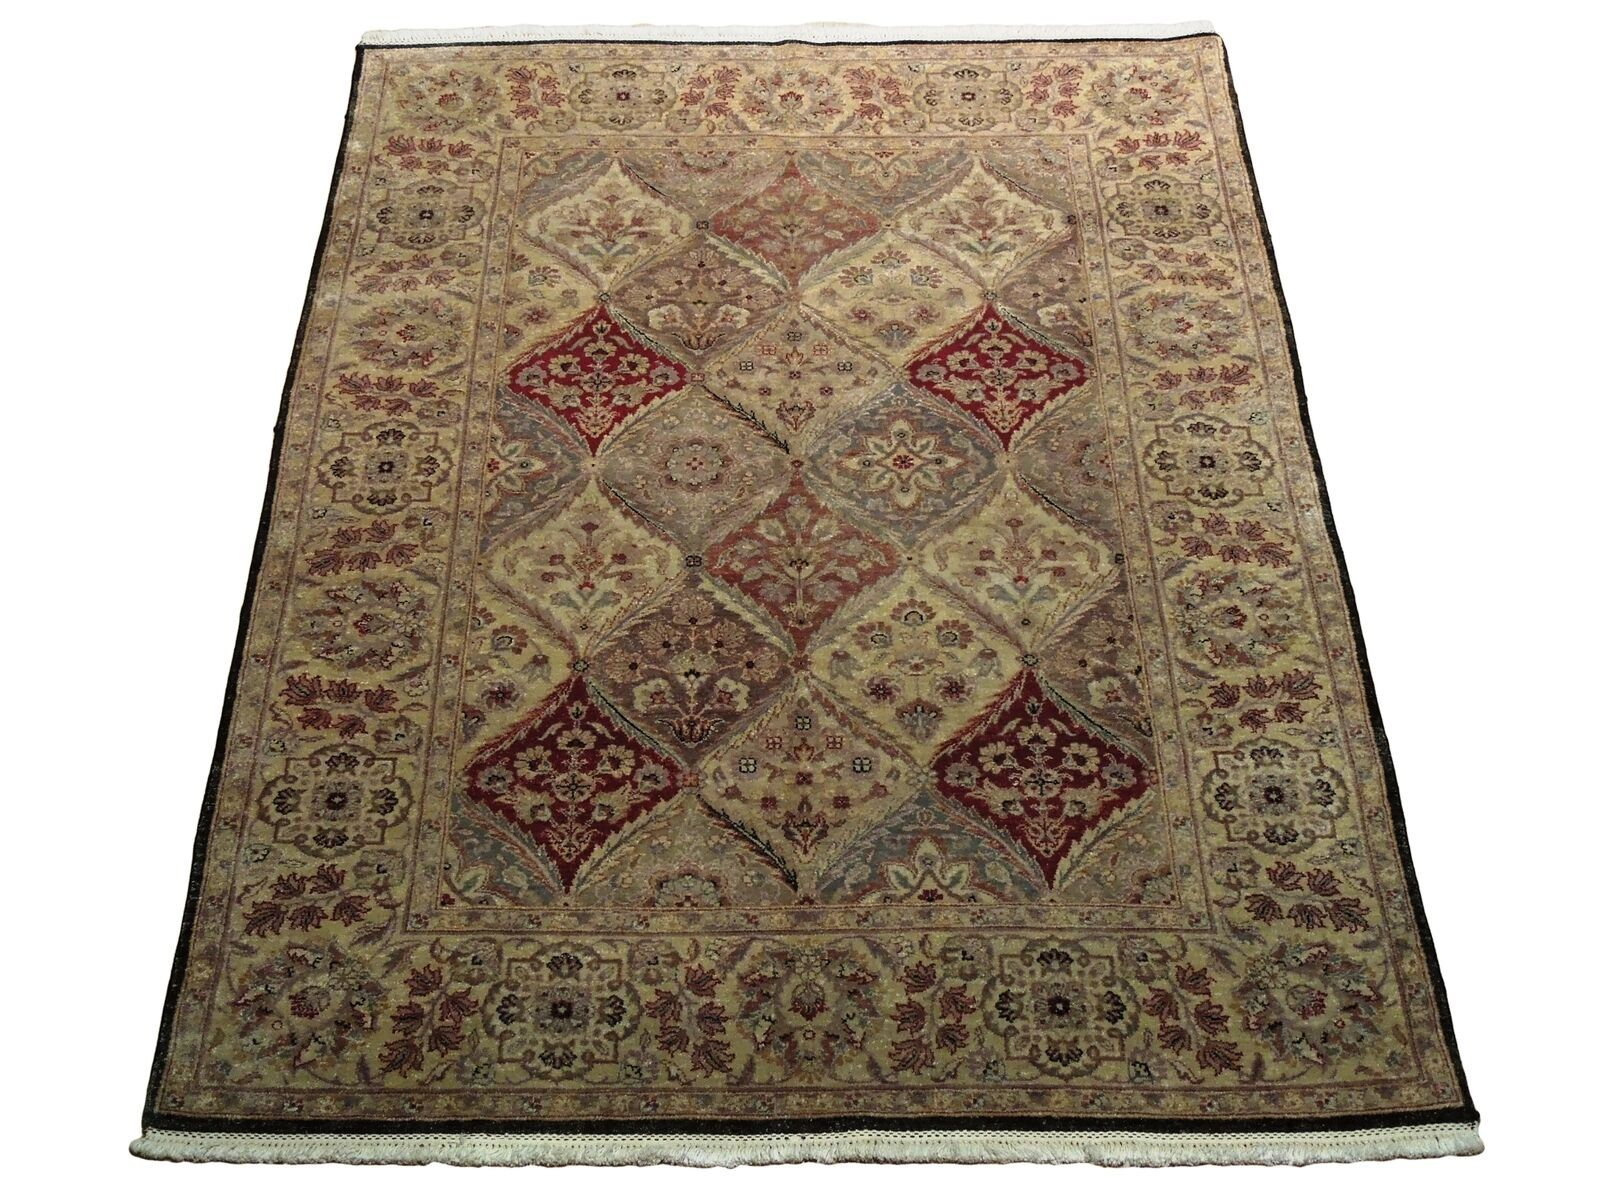 5x7 Multi-Color Oushak Wool Handmade Checked All-Over Transitional Area Rug